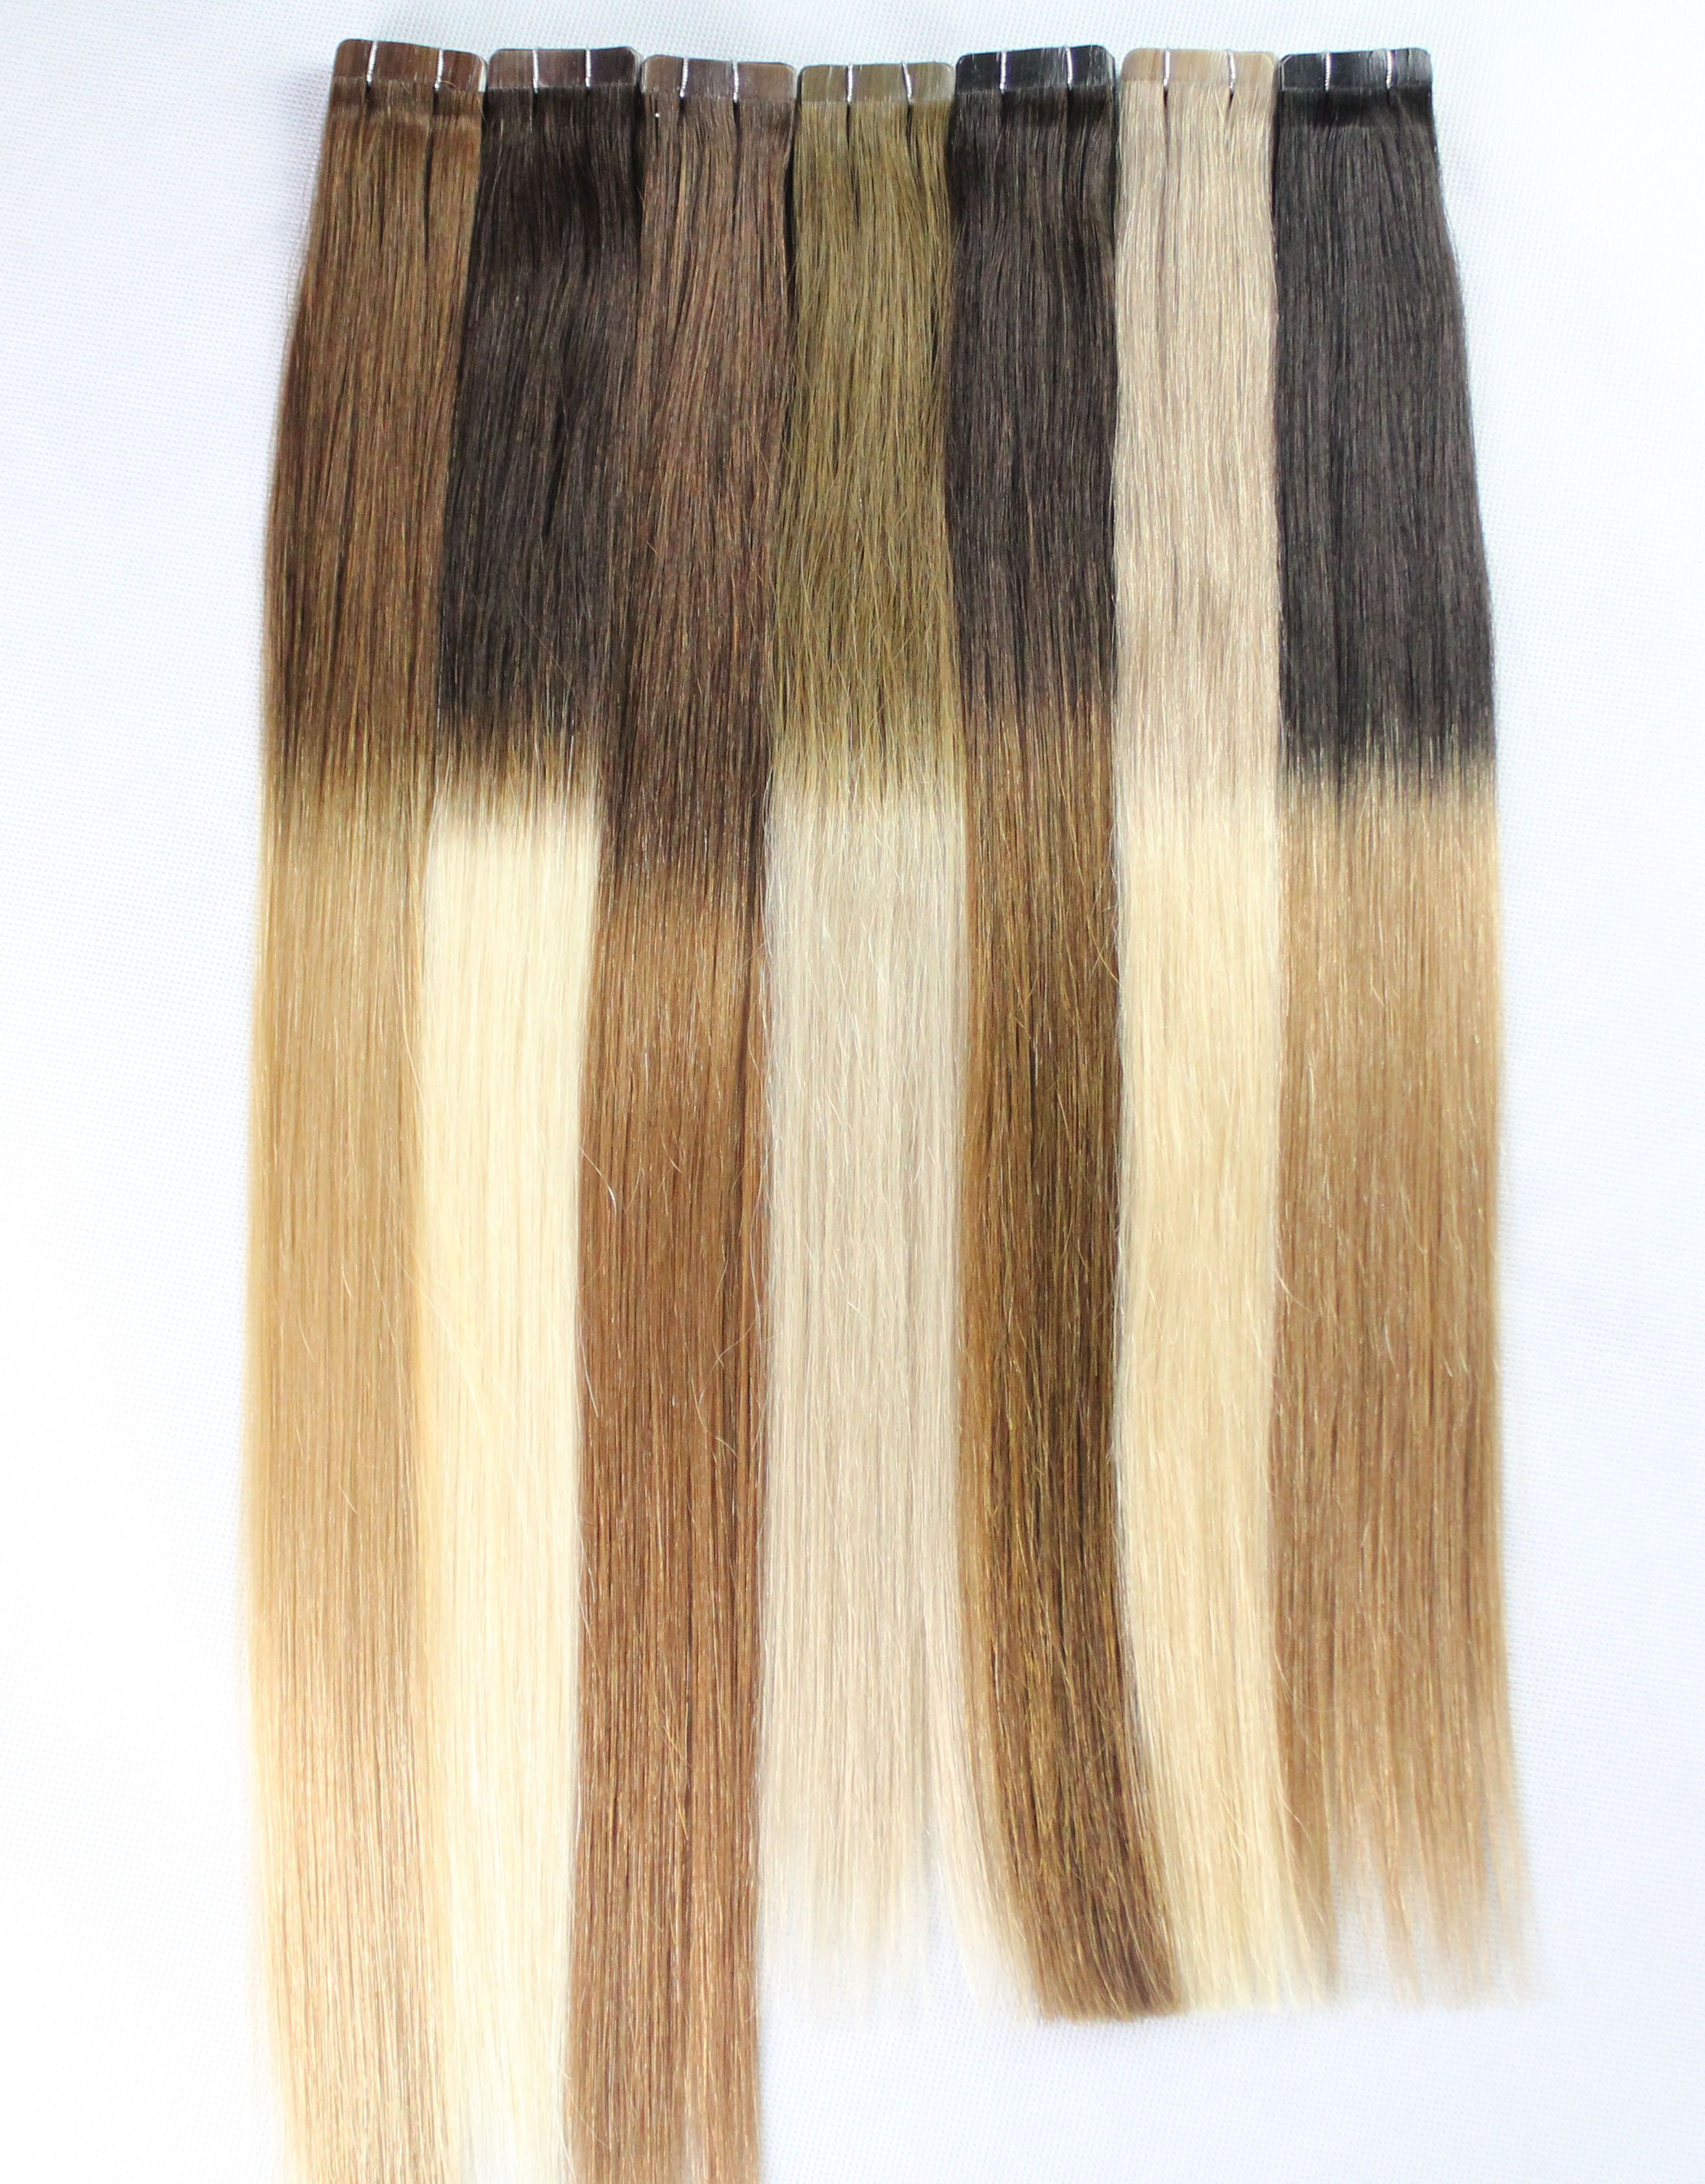 Tyhermenlisa Ombre Tape Hair Extensions My Pinterest Likes